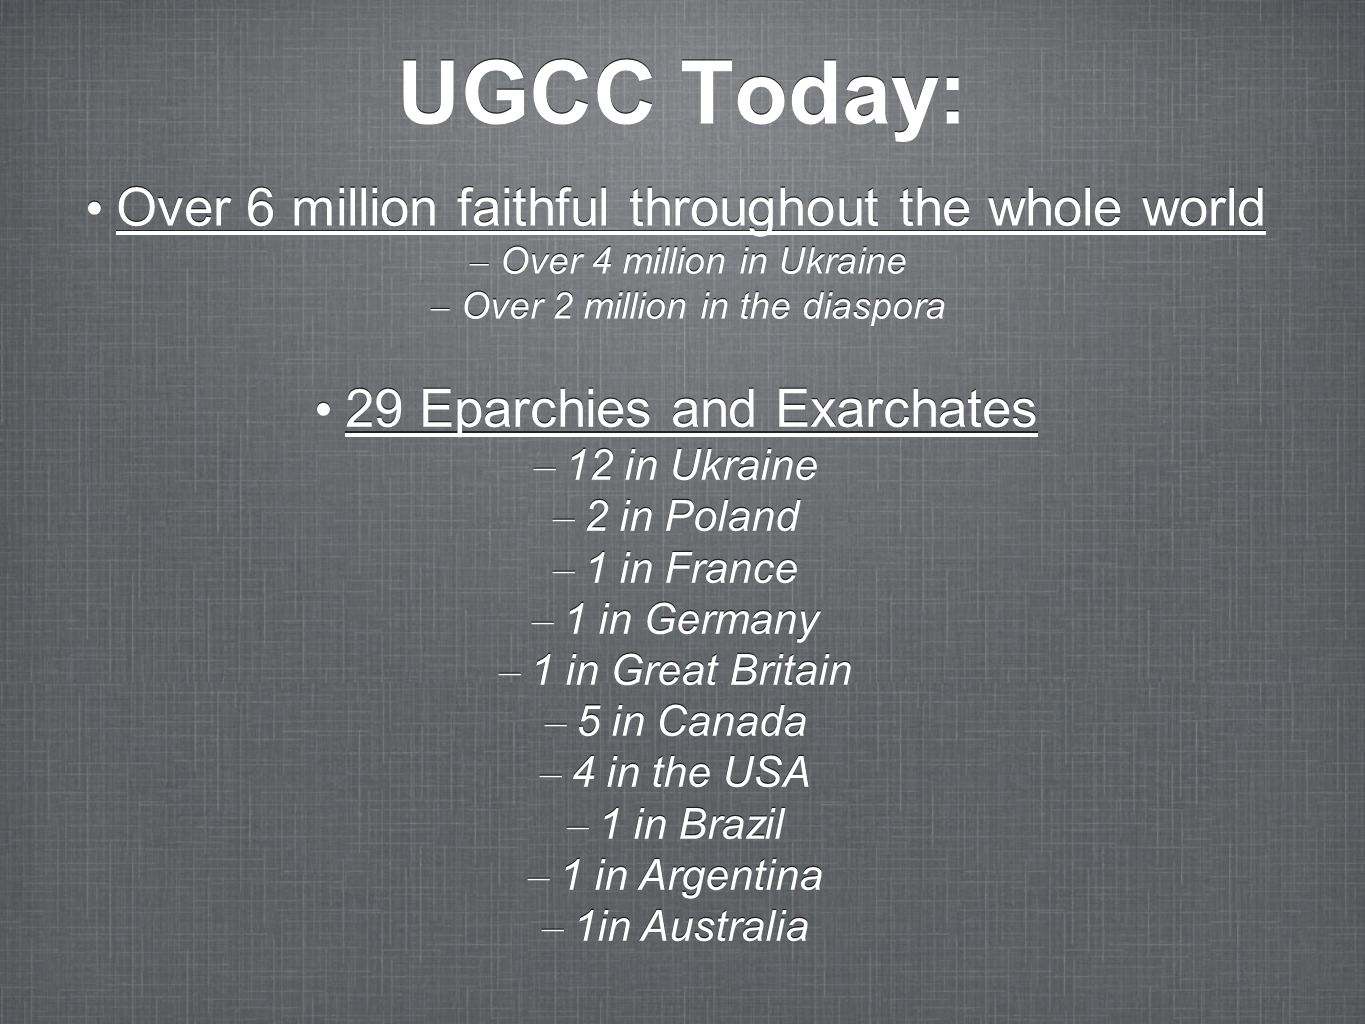 UGCC Today: Over 6 million faithful throughout the whole world –Over 4 million in Ukraine –Over 2 million in the diaspora Over 6 million faithful thro